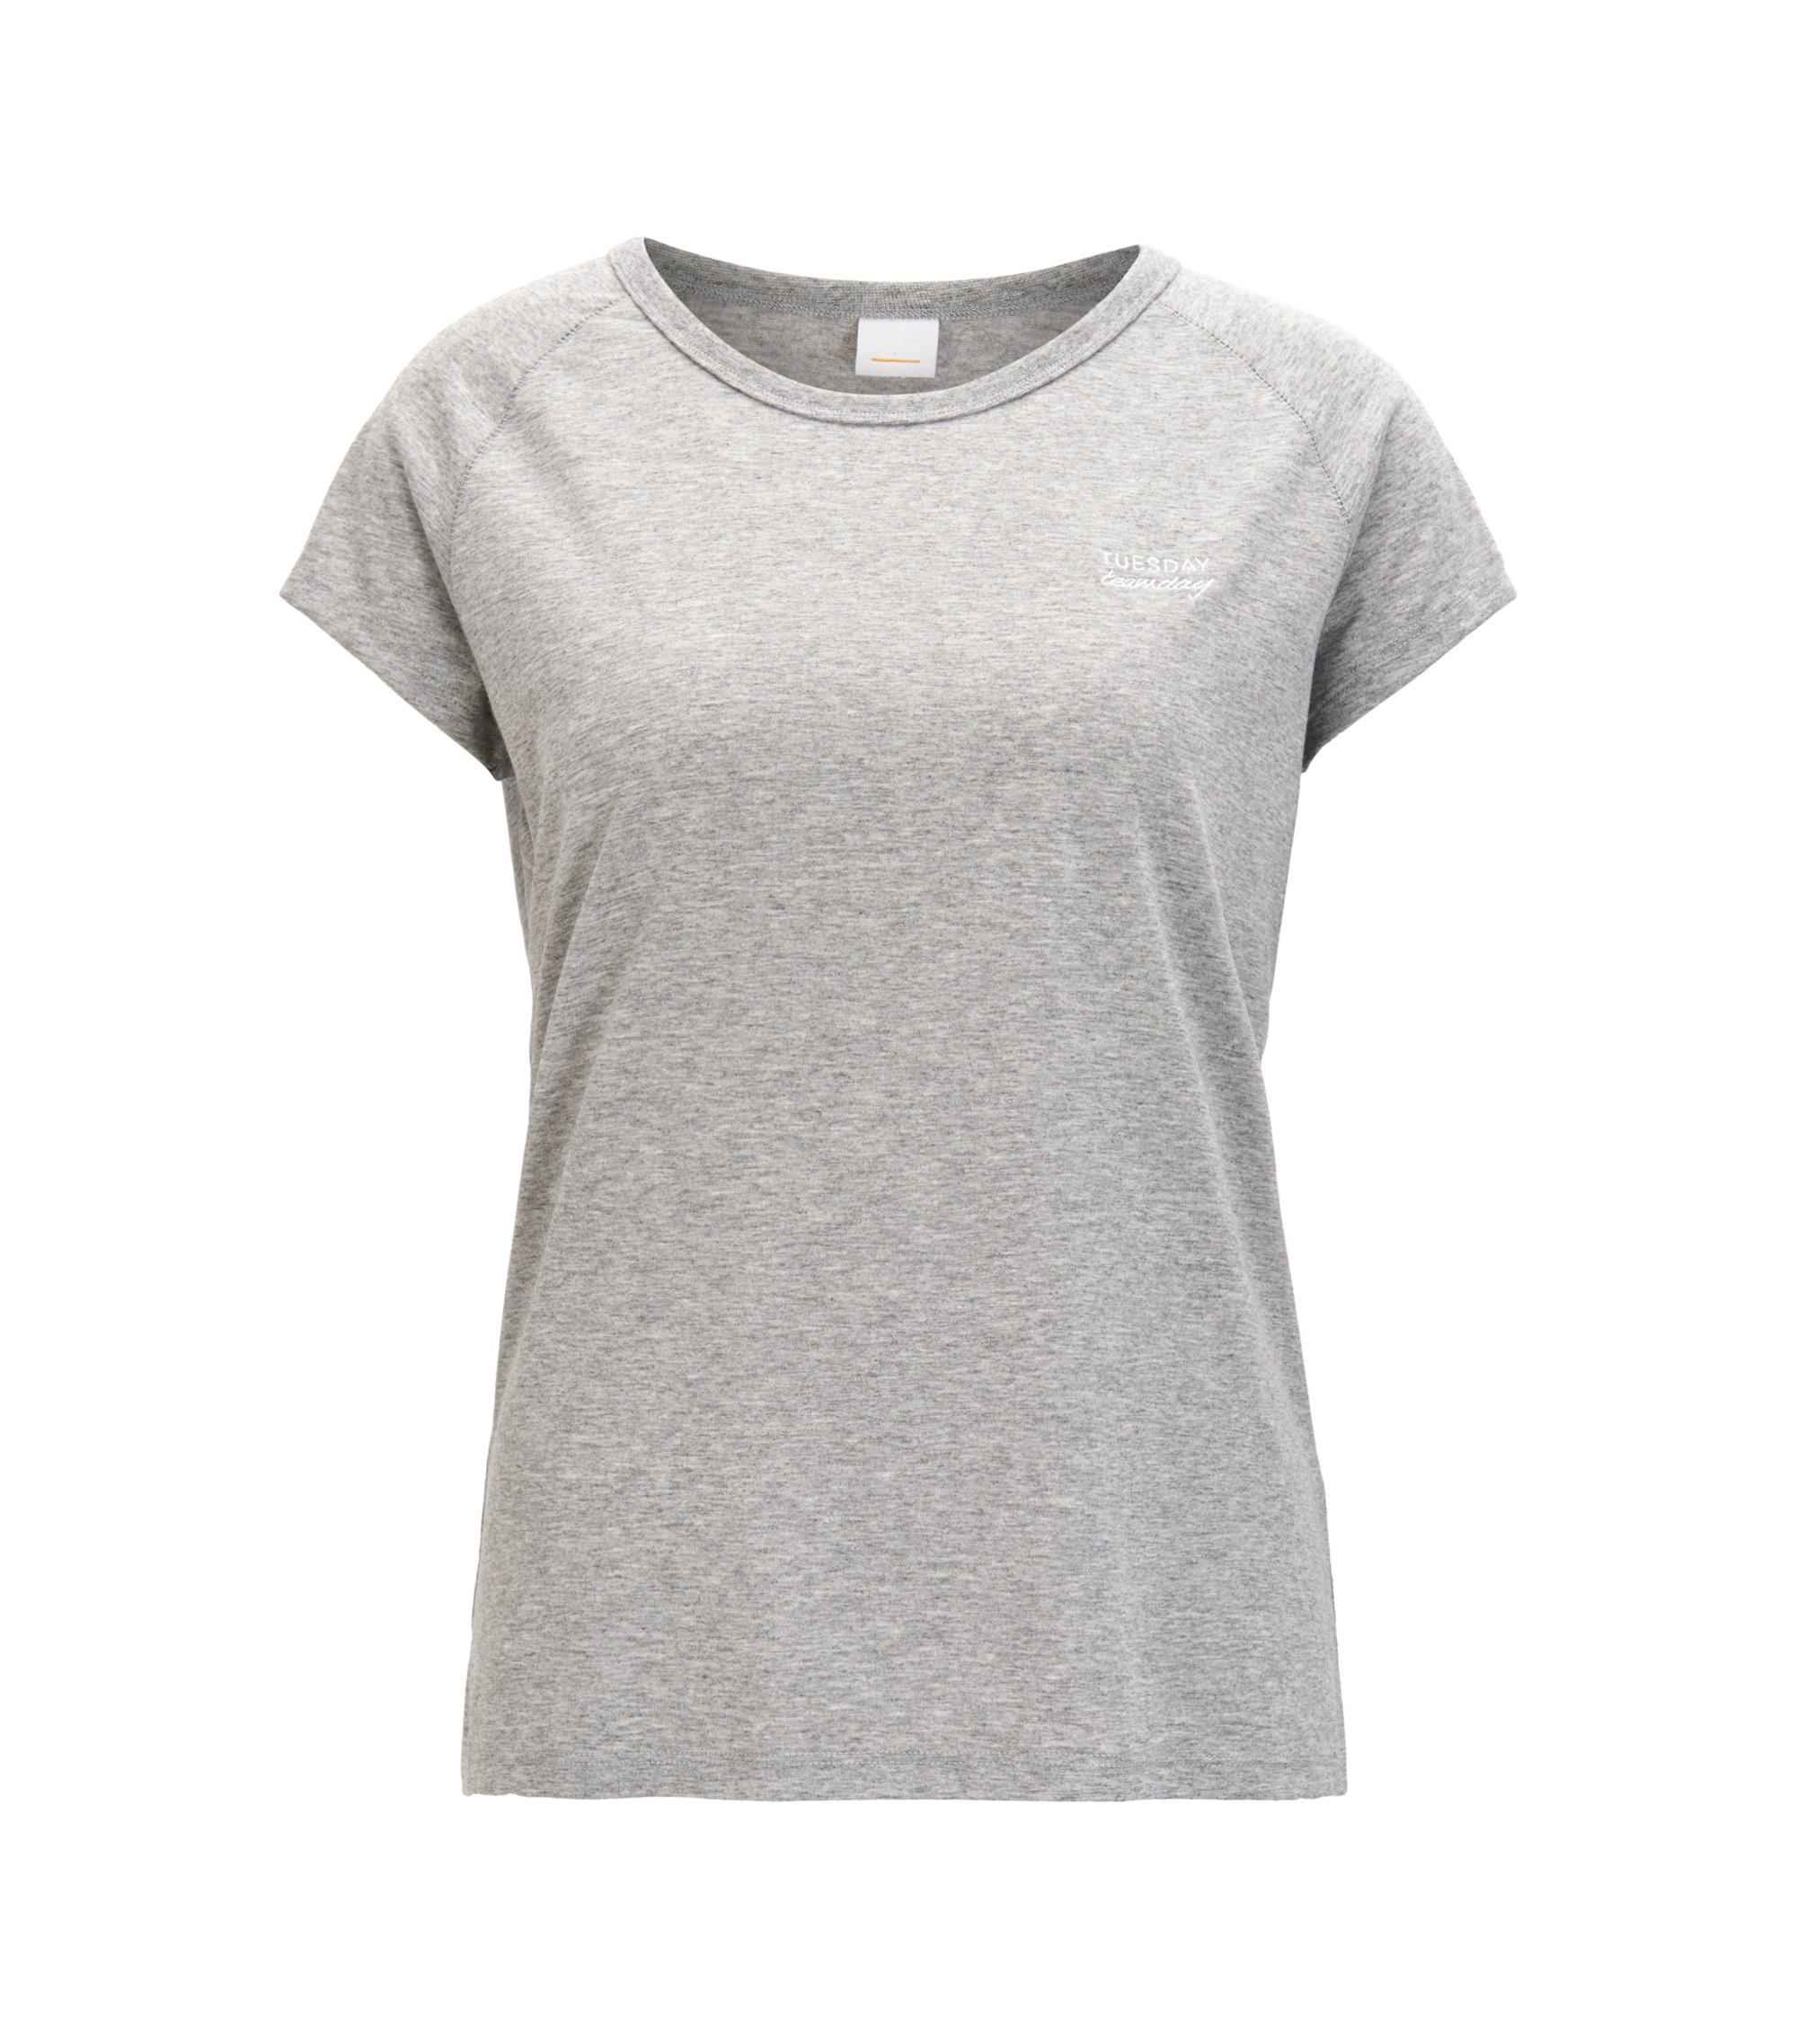 Slogan-detail mélange T-shirt with raglan sleeves, Gris chiné